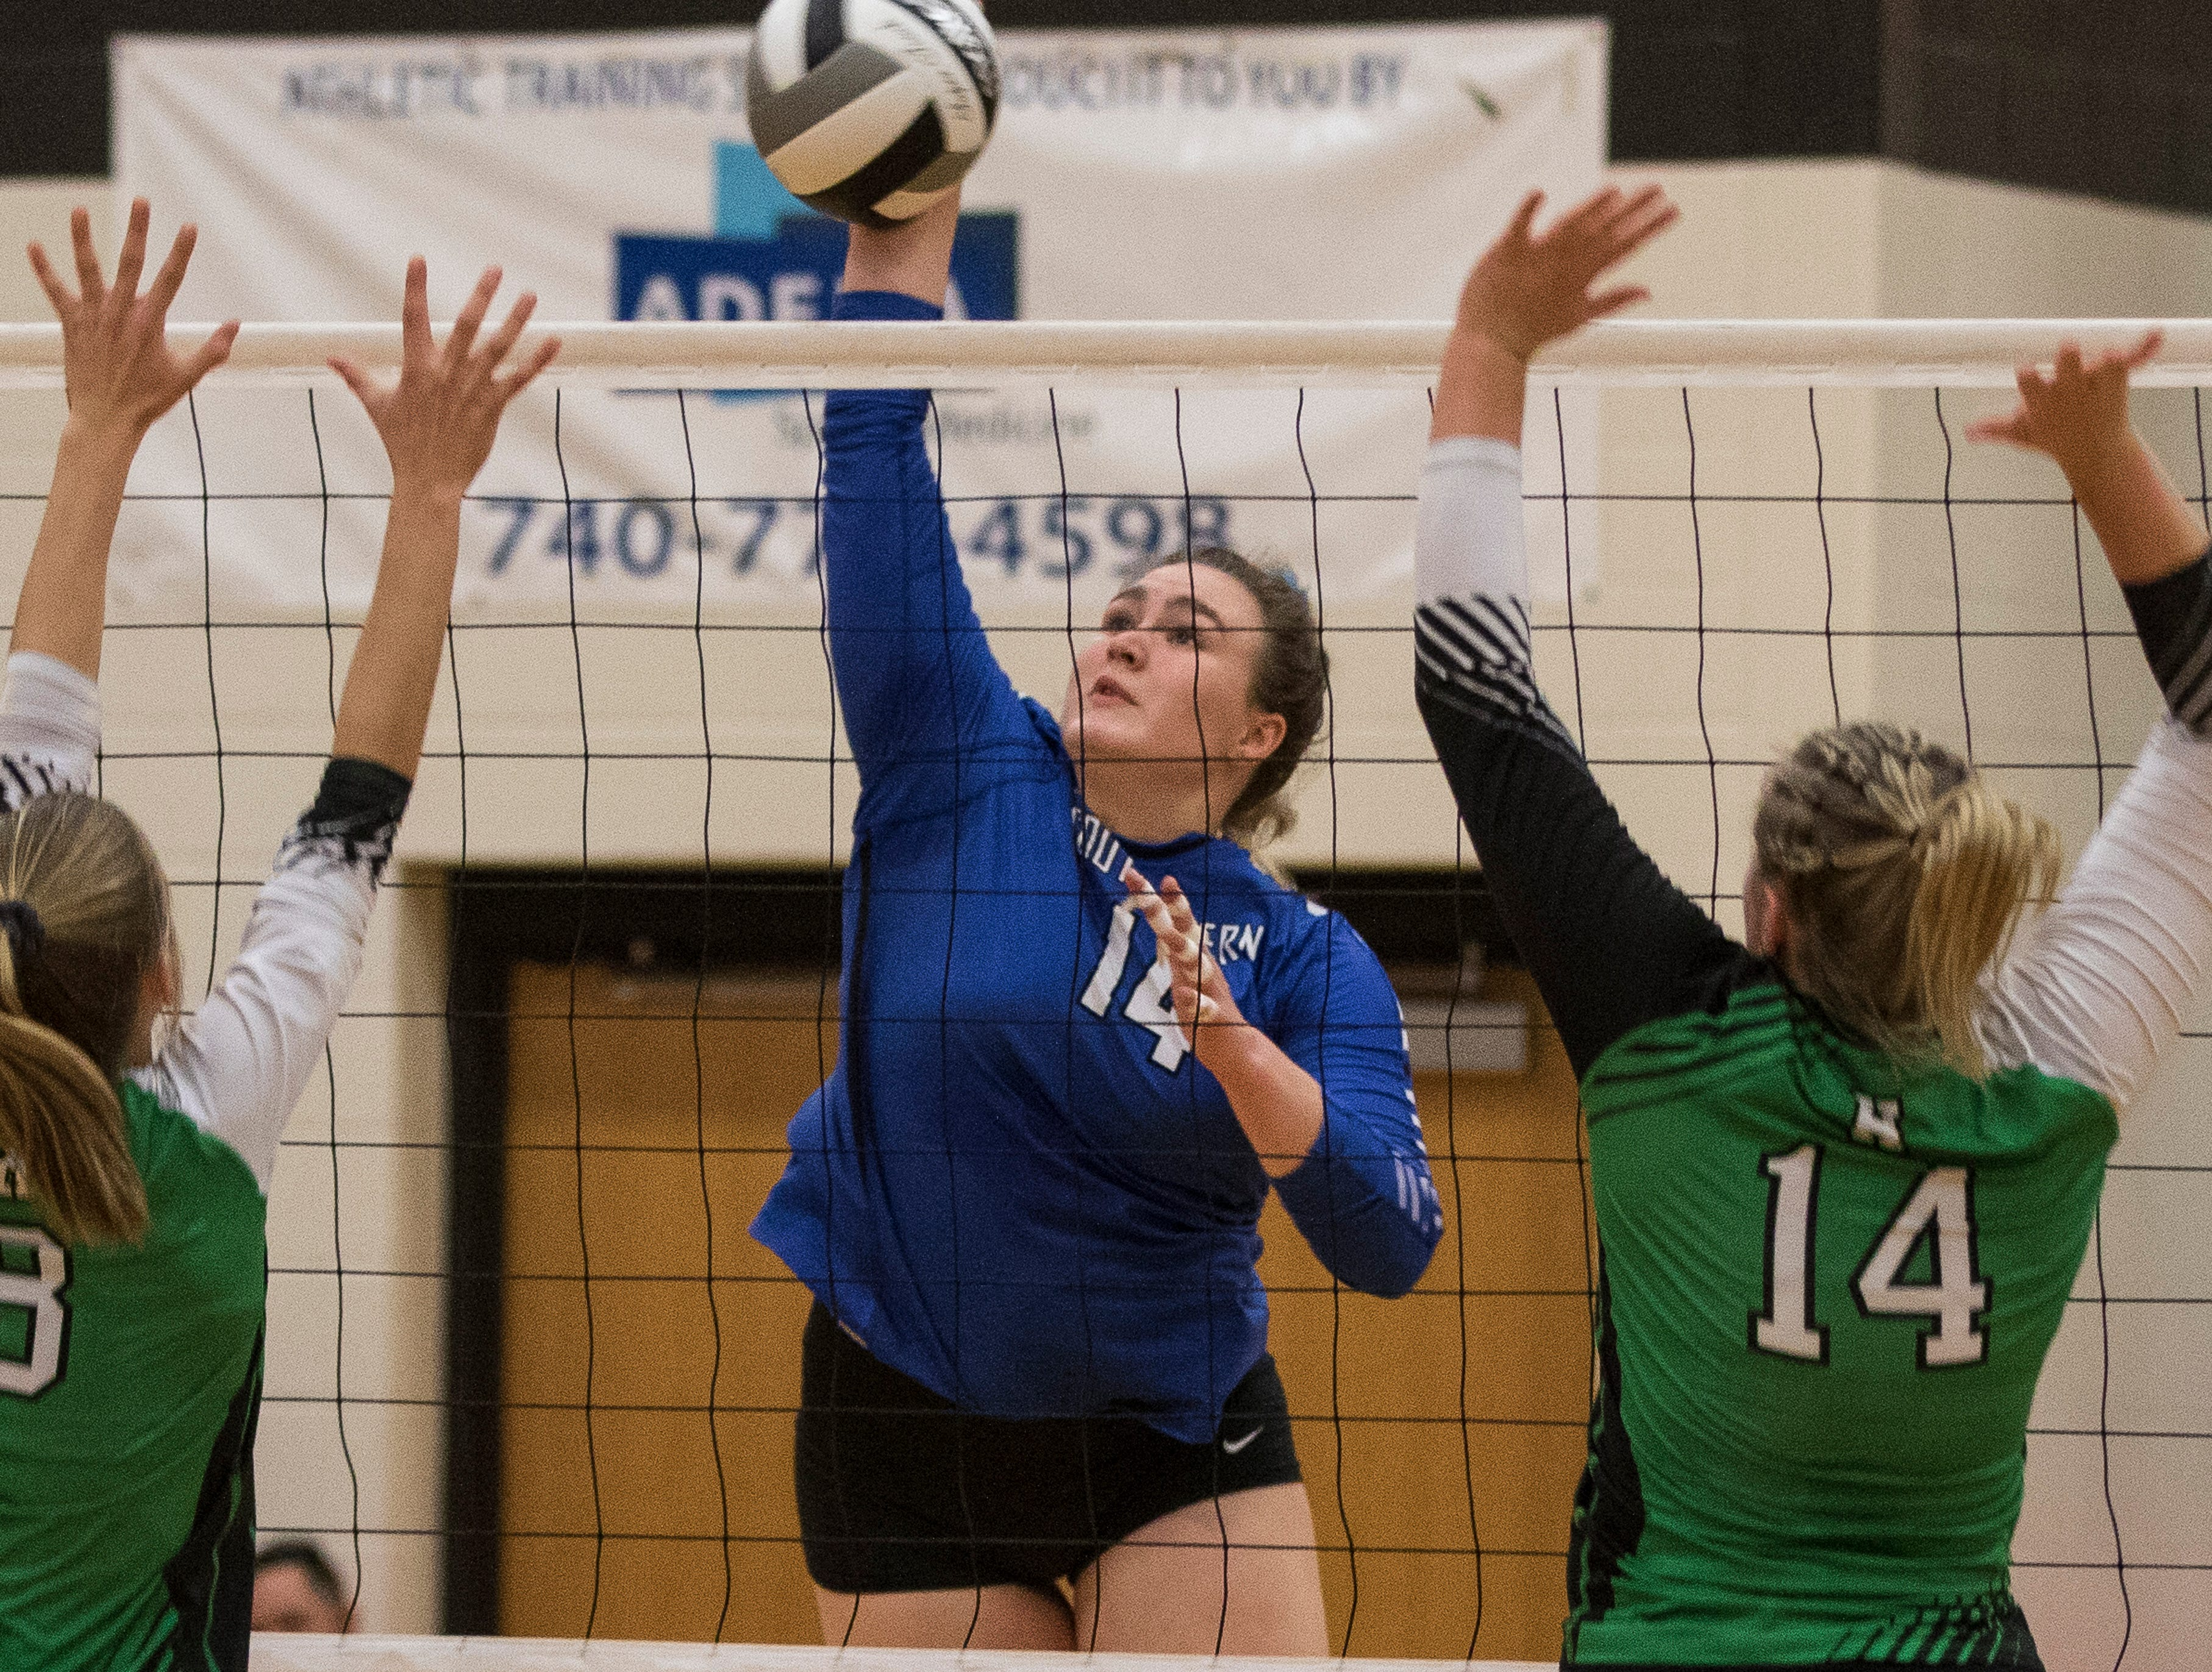 Southeastern' s Skylar Hice spikes the ball against Huntington Wednesday night during a Division III district semifinals match. Southeastern went on to defeat Huntington 3-2, advancing them to district finals against Zane Trace Saturday.